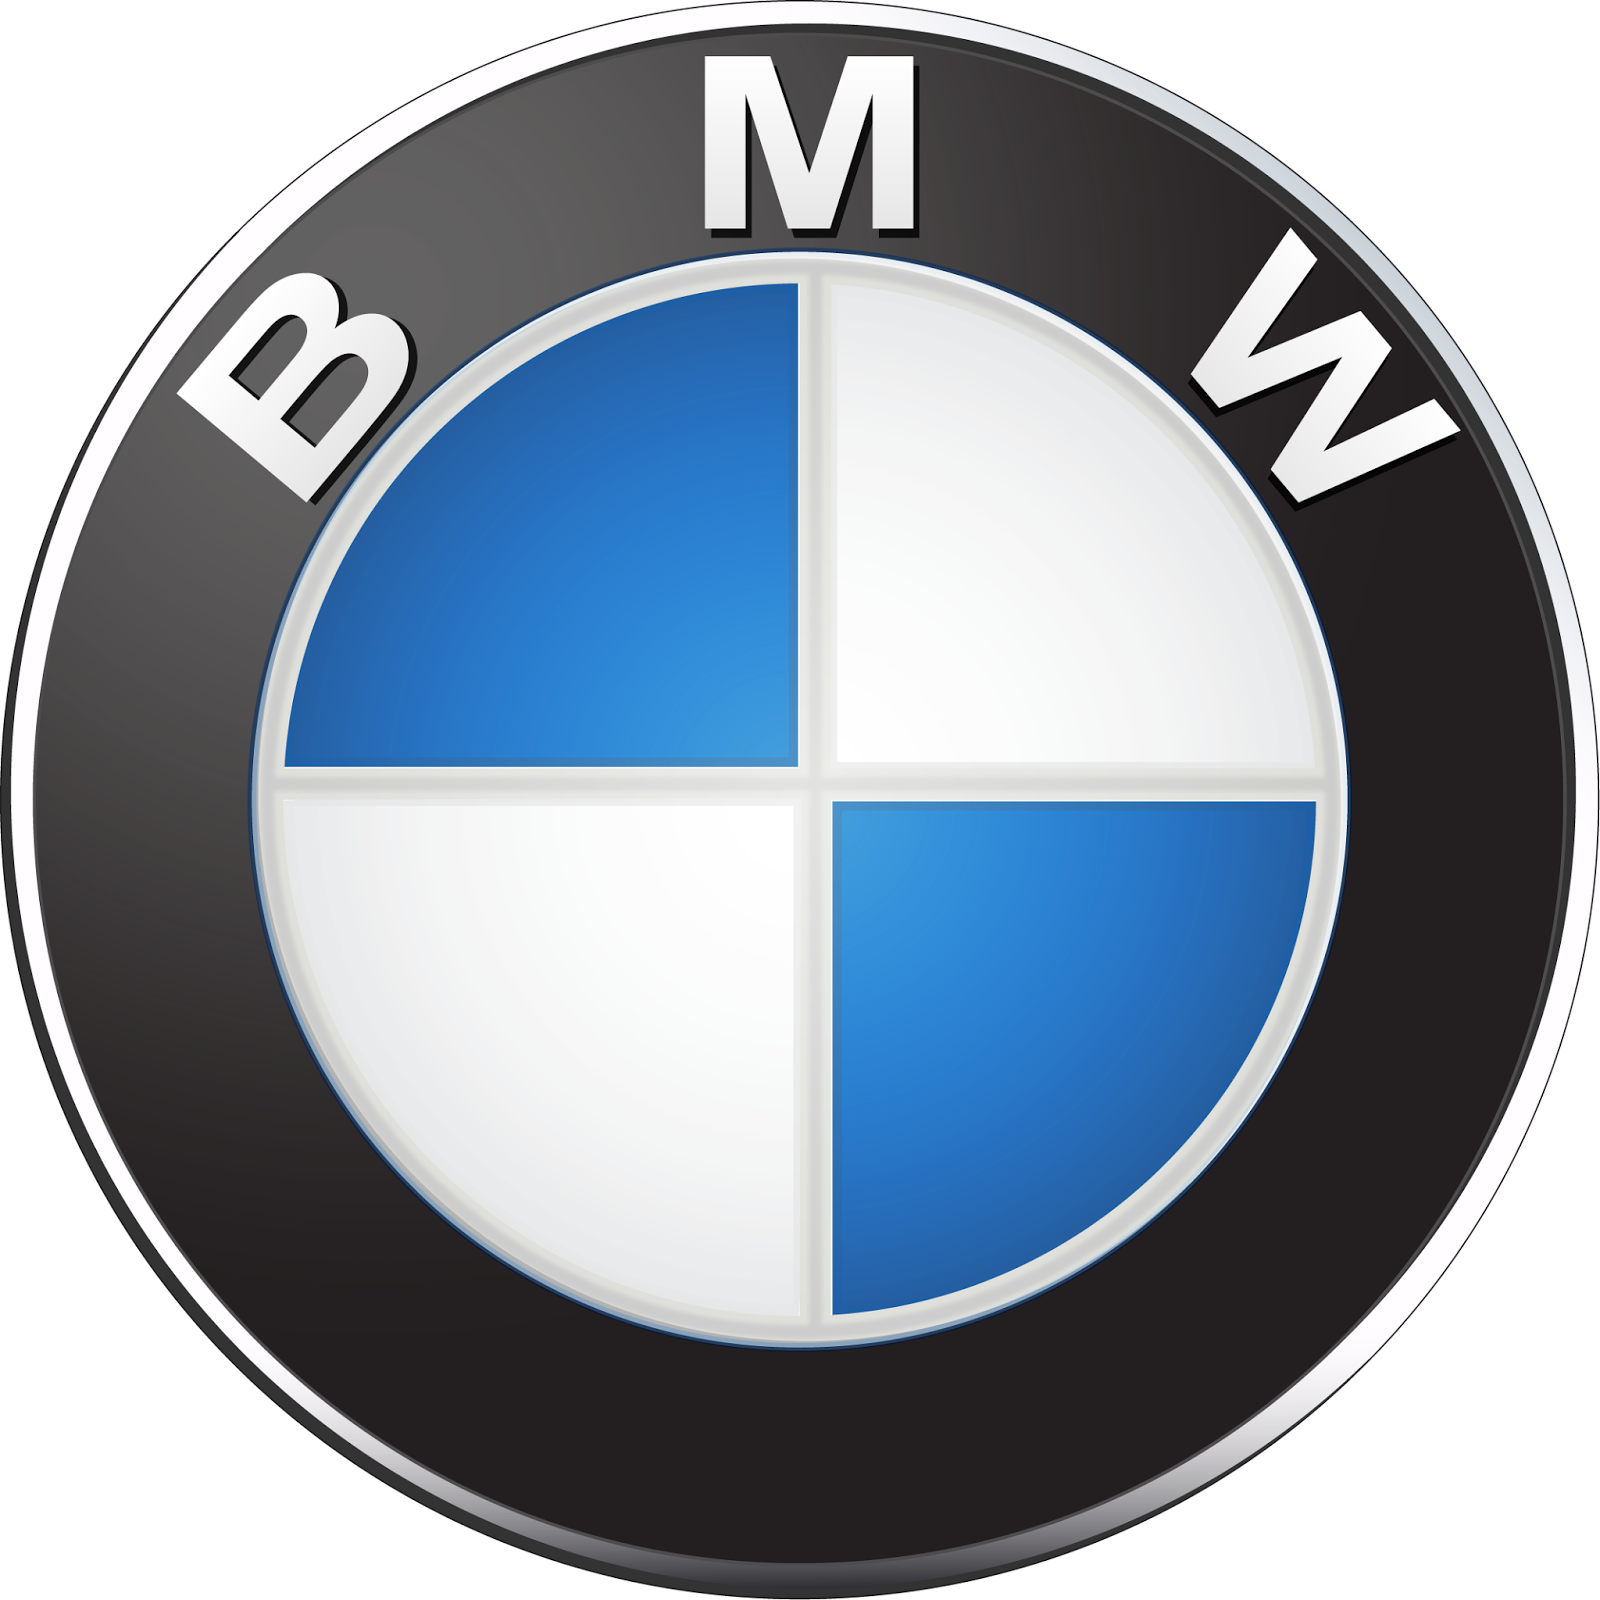 bmw logo png images free download. Black Bedroom Furniture Sets. Home Design Ideas